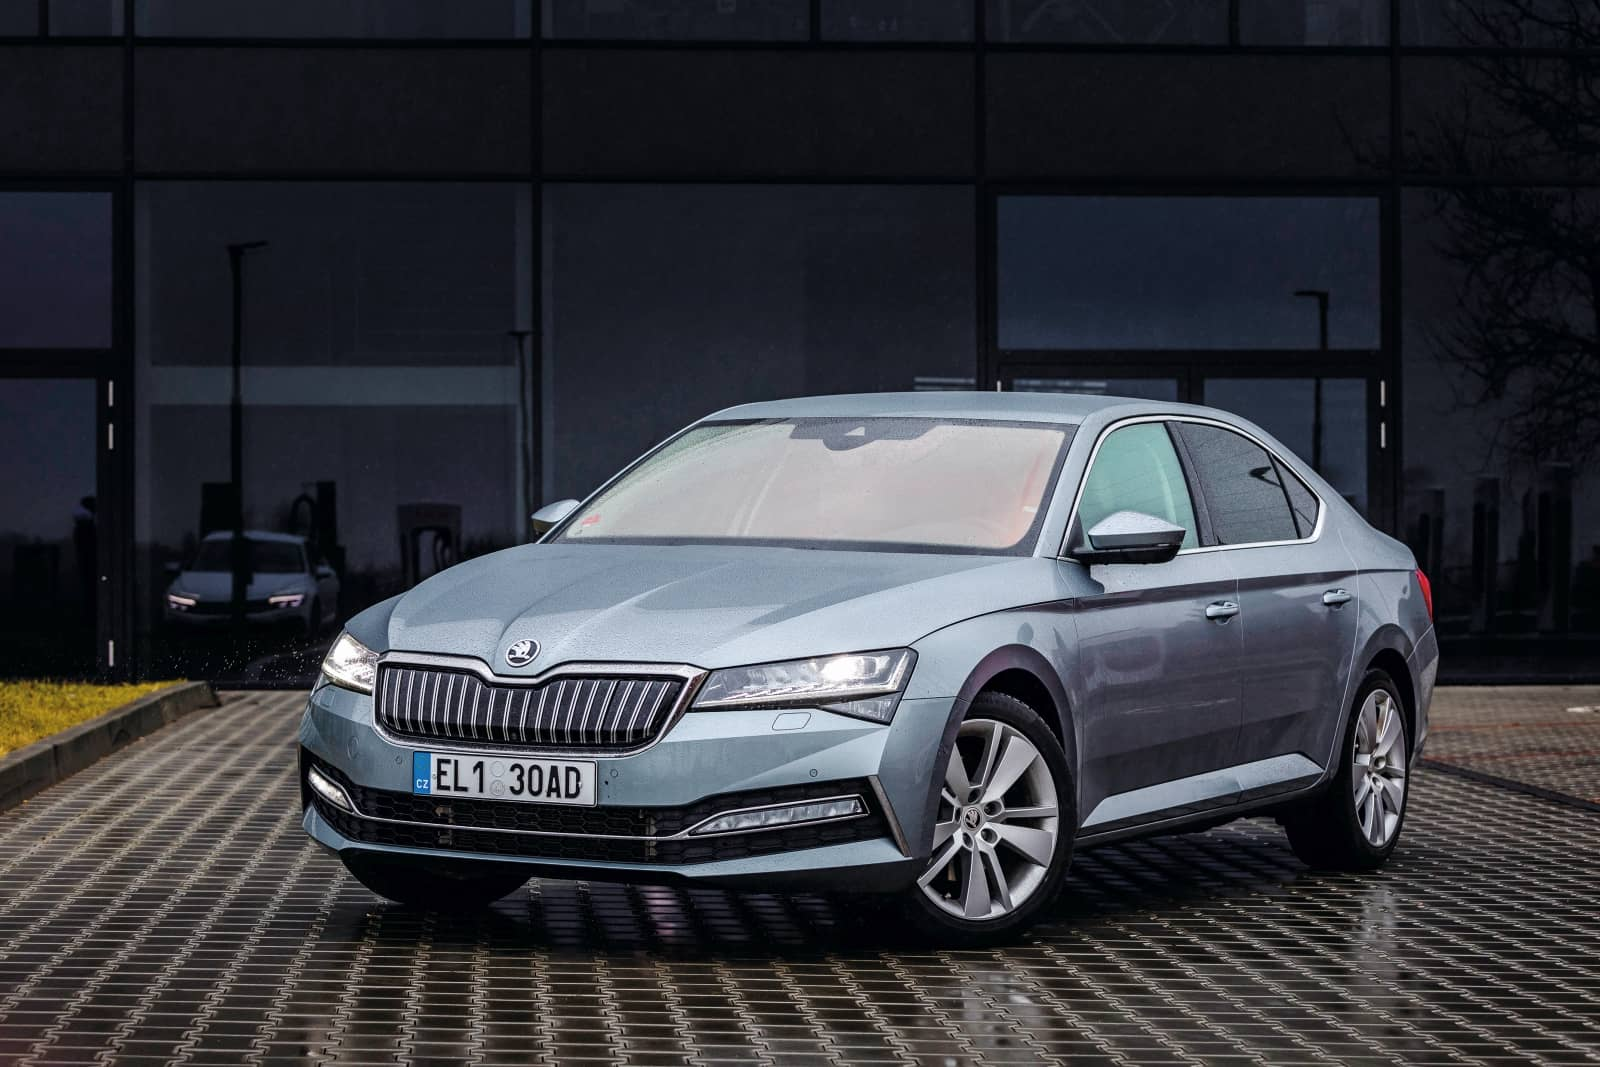 aDMB2020_Superb iV vs. Passat GTE-0804